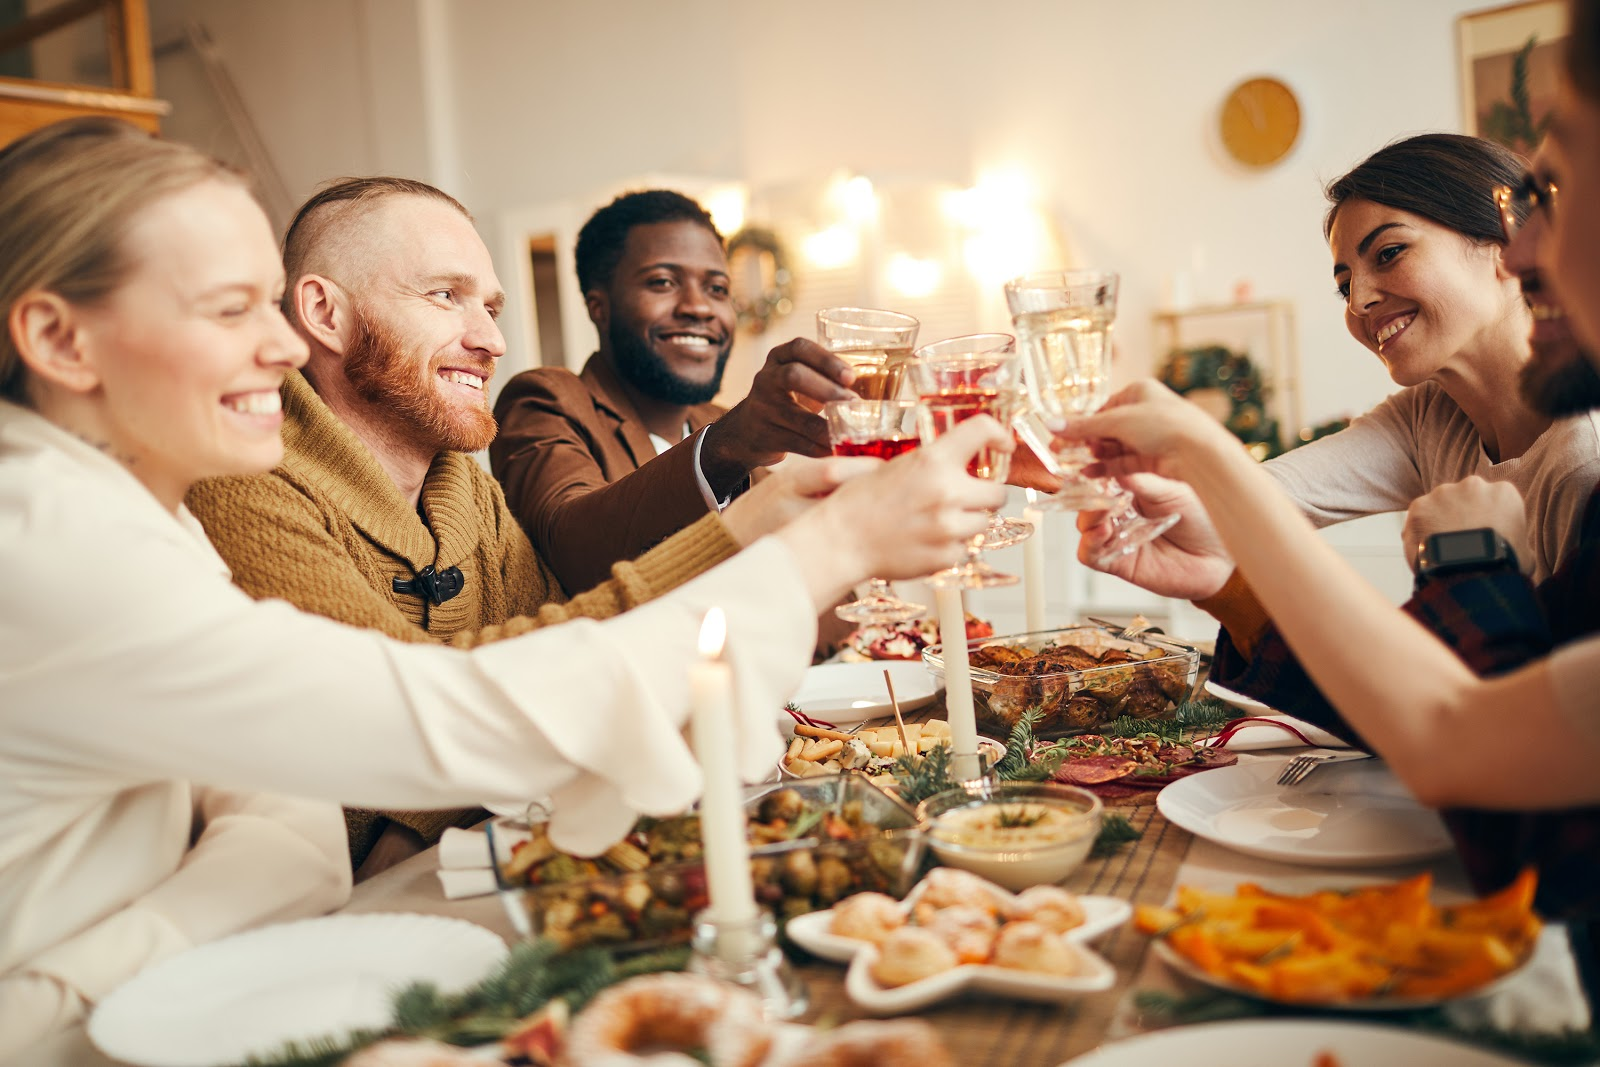 Non-traditional thanksgiving dinner ideas: An eclectic group of friends raise their glasses over the Thanksgiving table